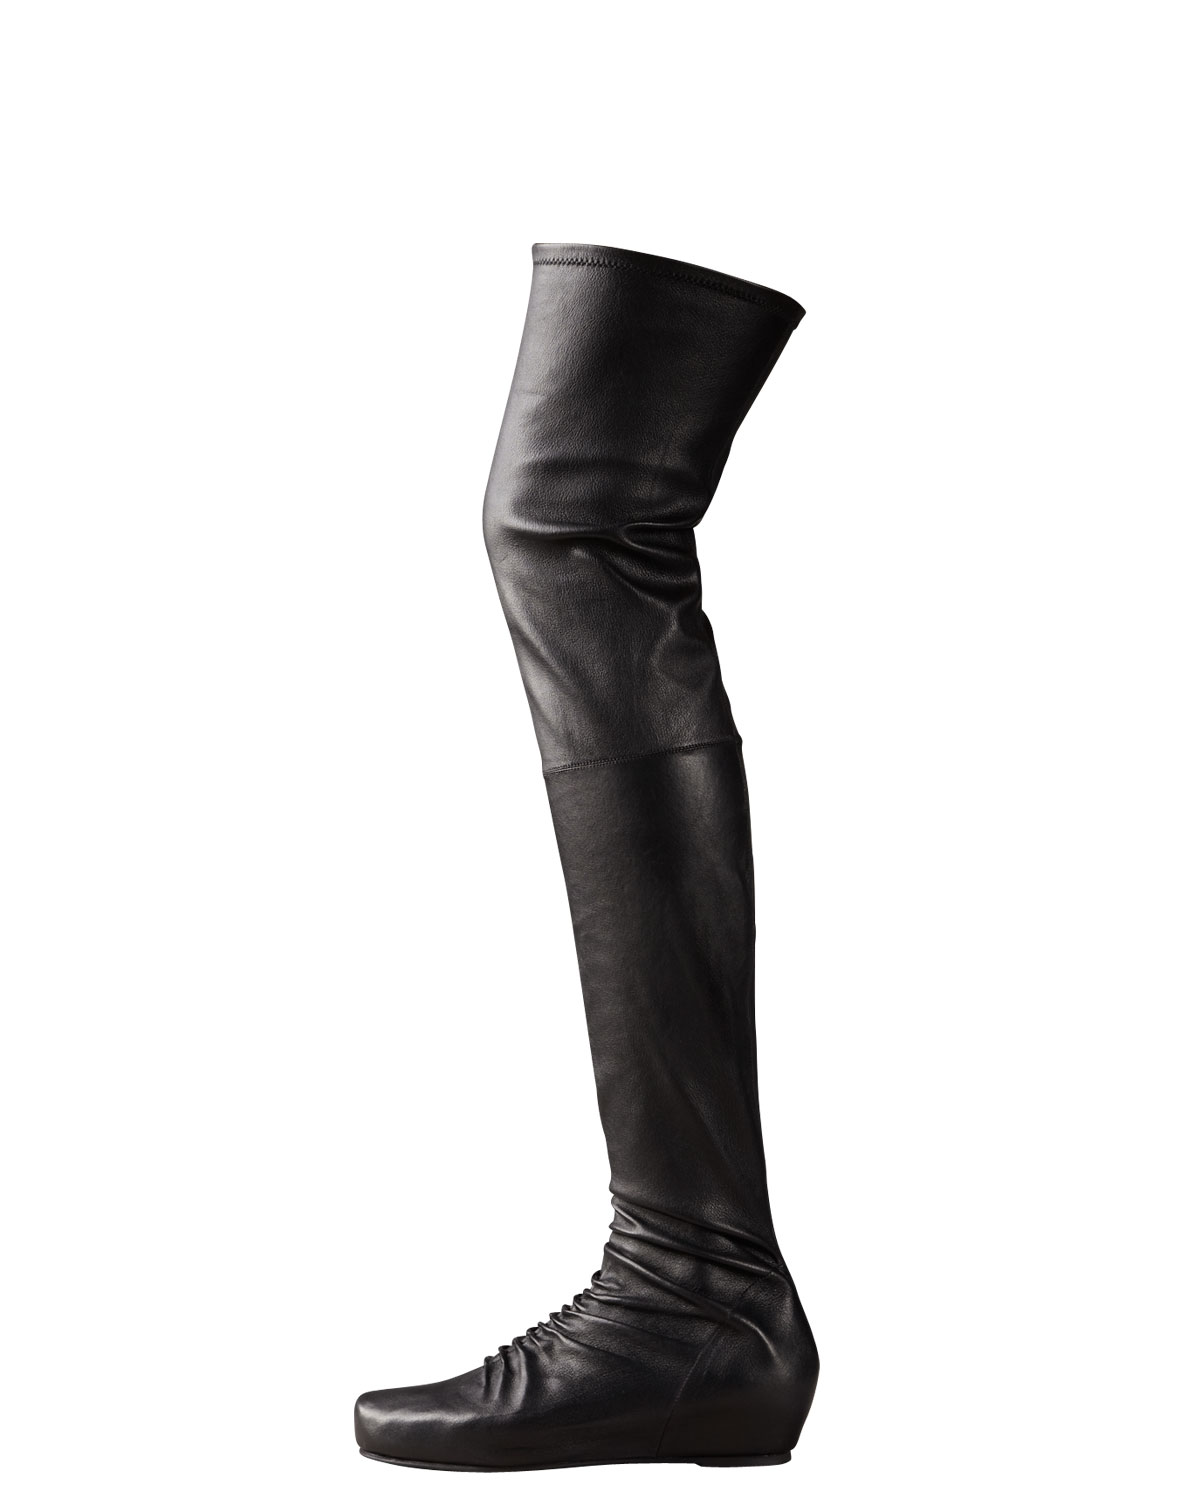 bc7a326a0fcb Rick Owens Internal-wedge Over-the-knee Boot in Black - Lyst